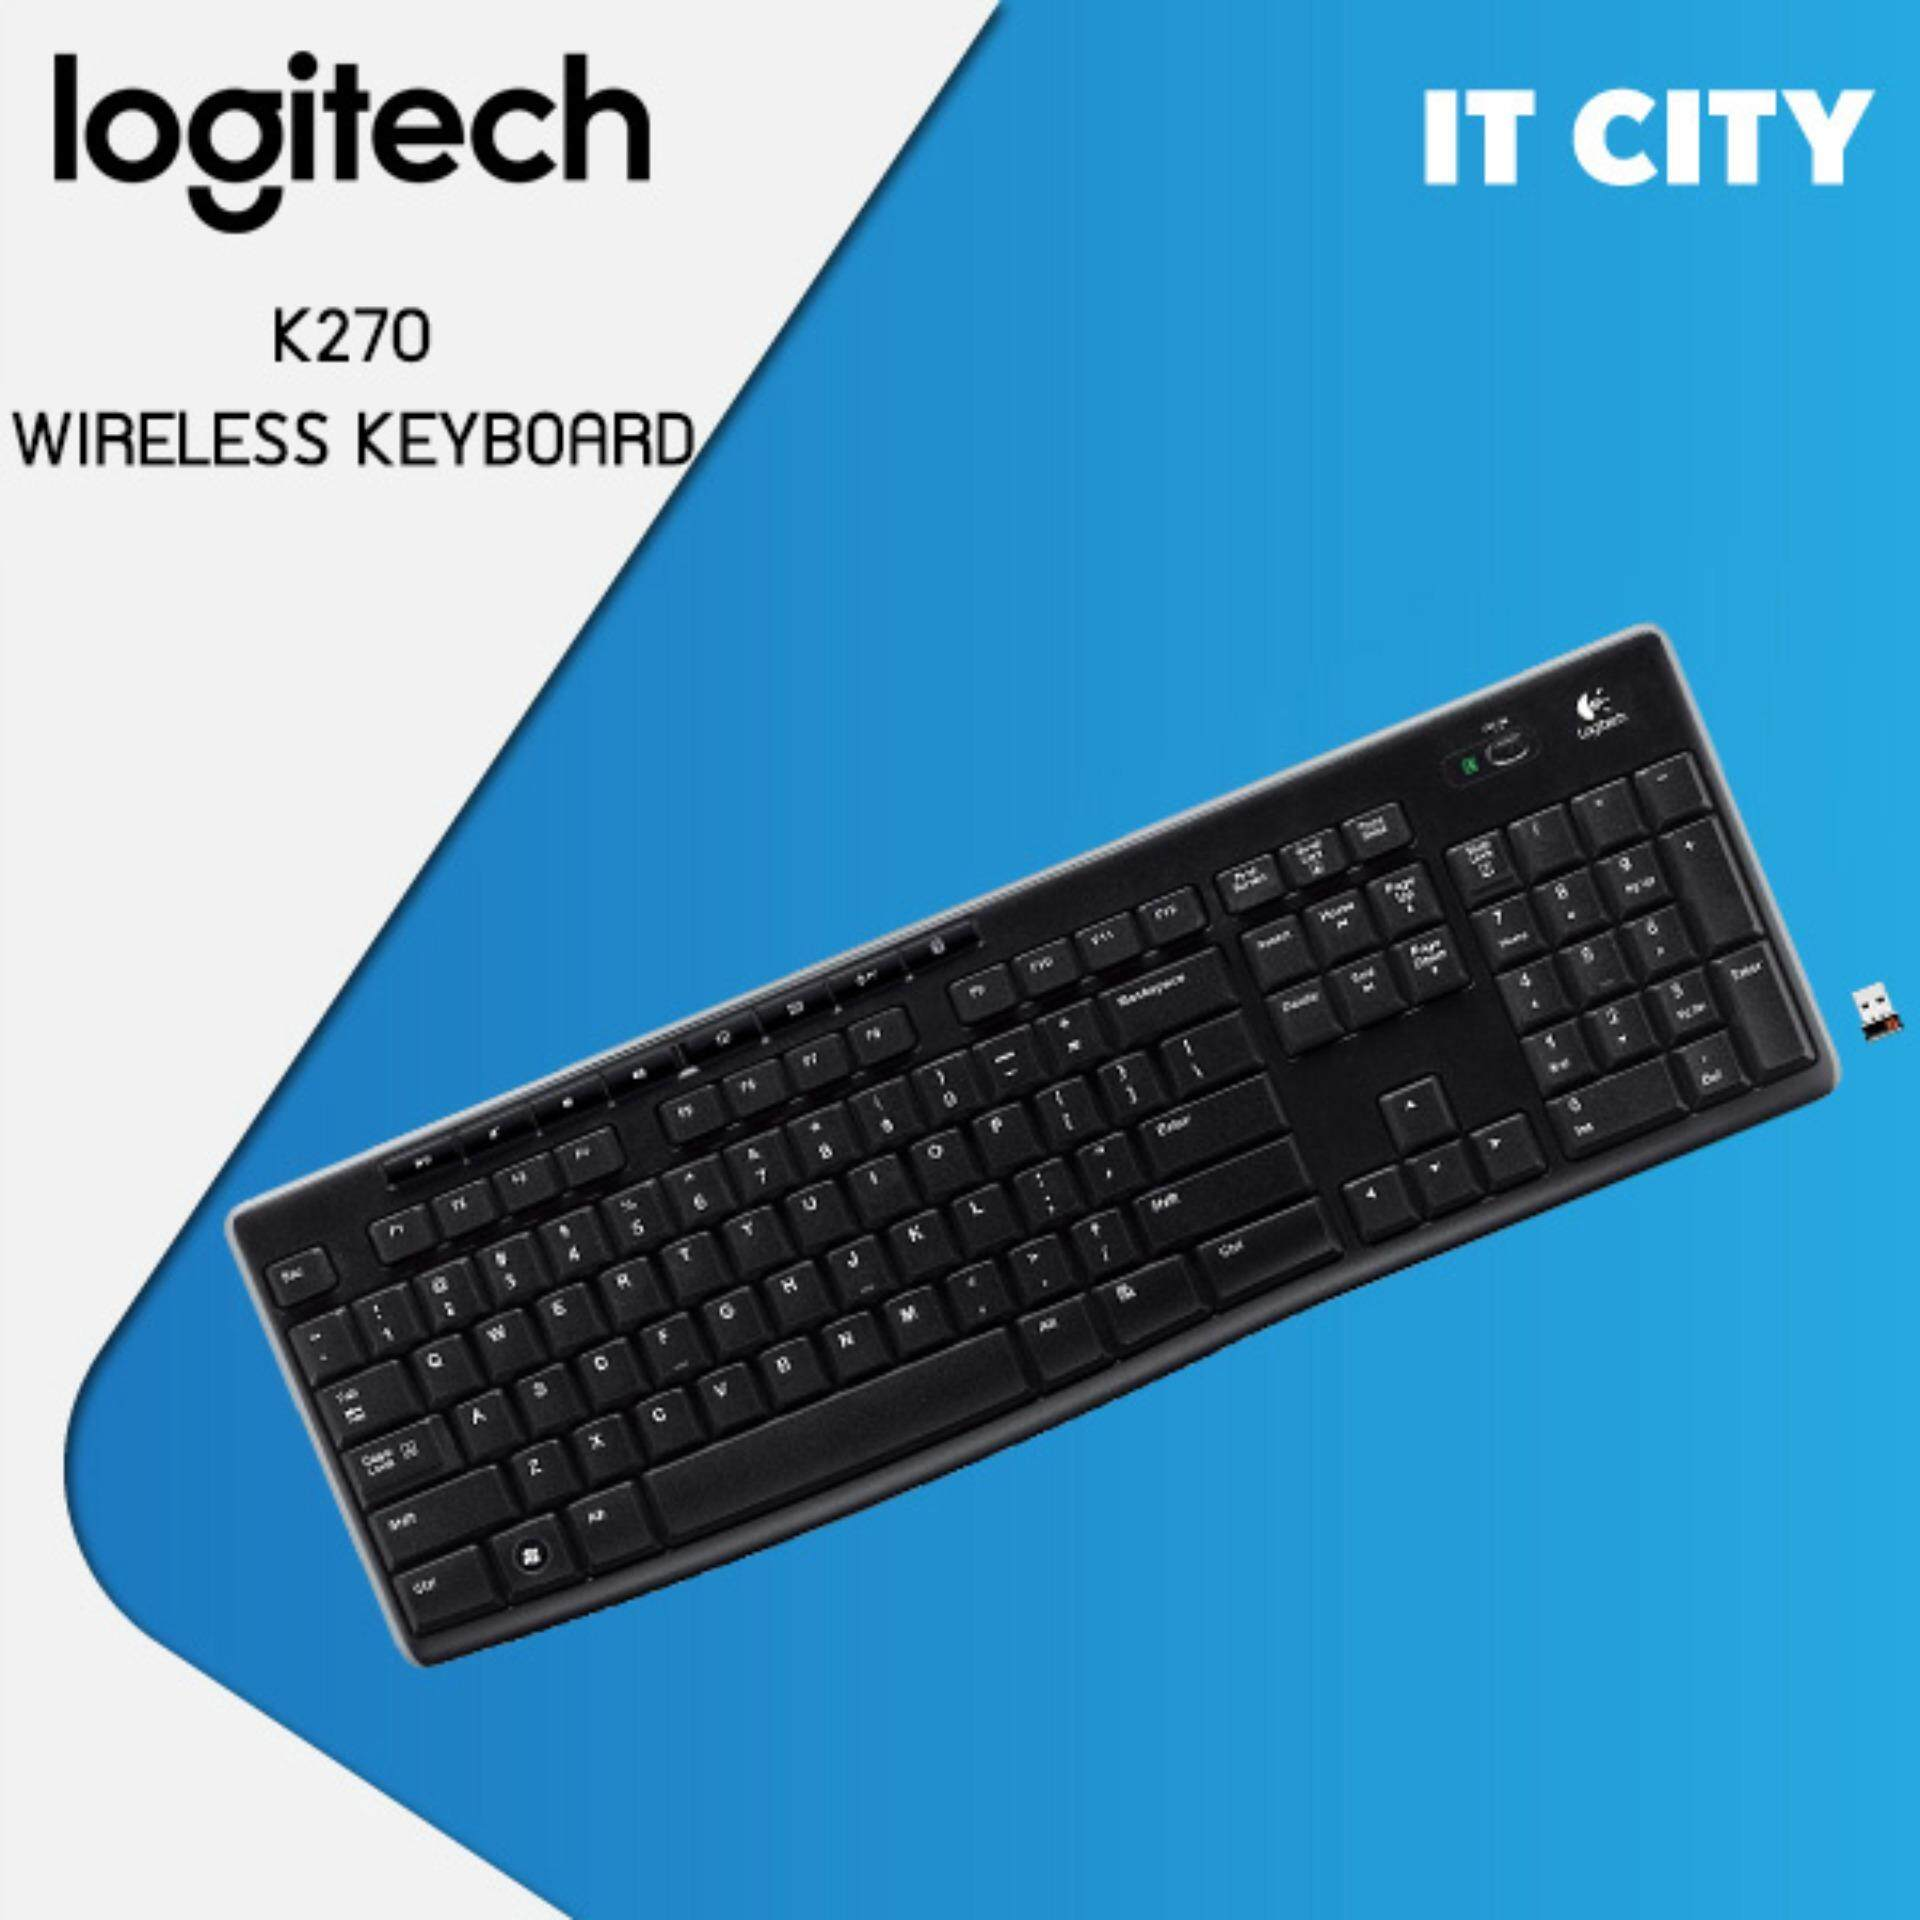 Logitech Wireless keyboard K270 (Black)